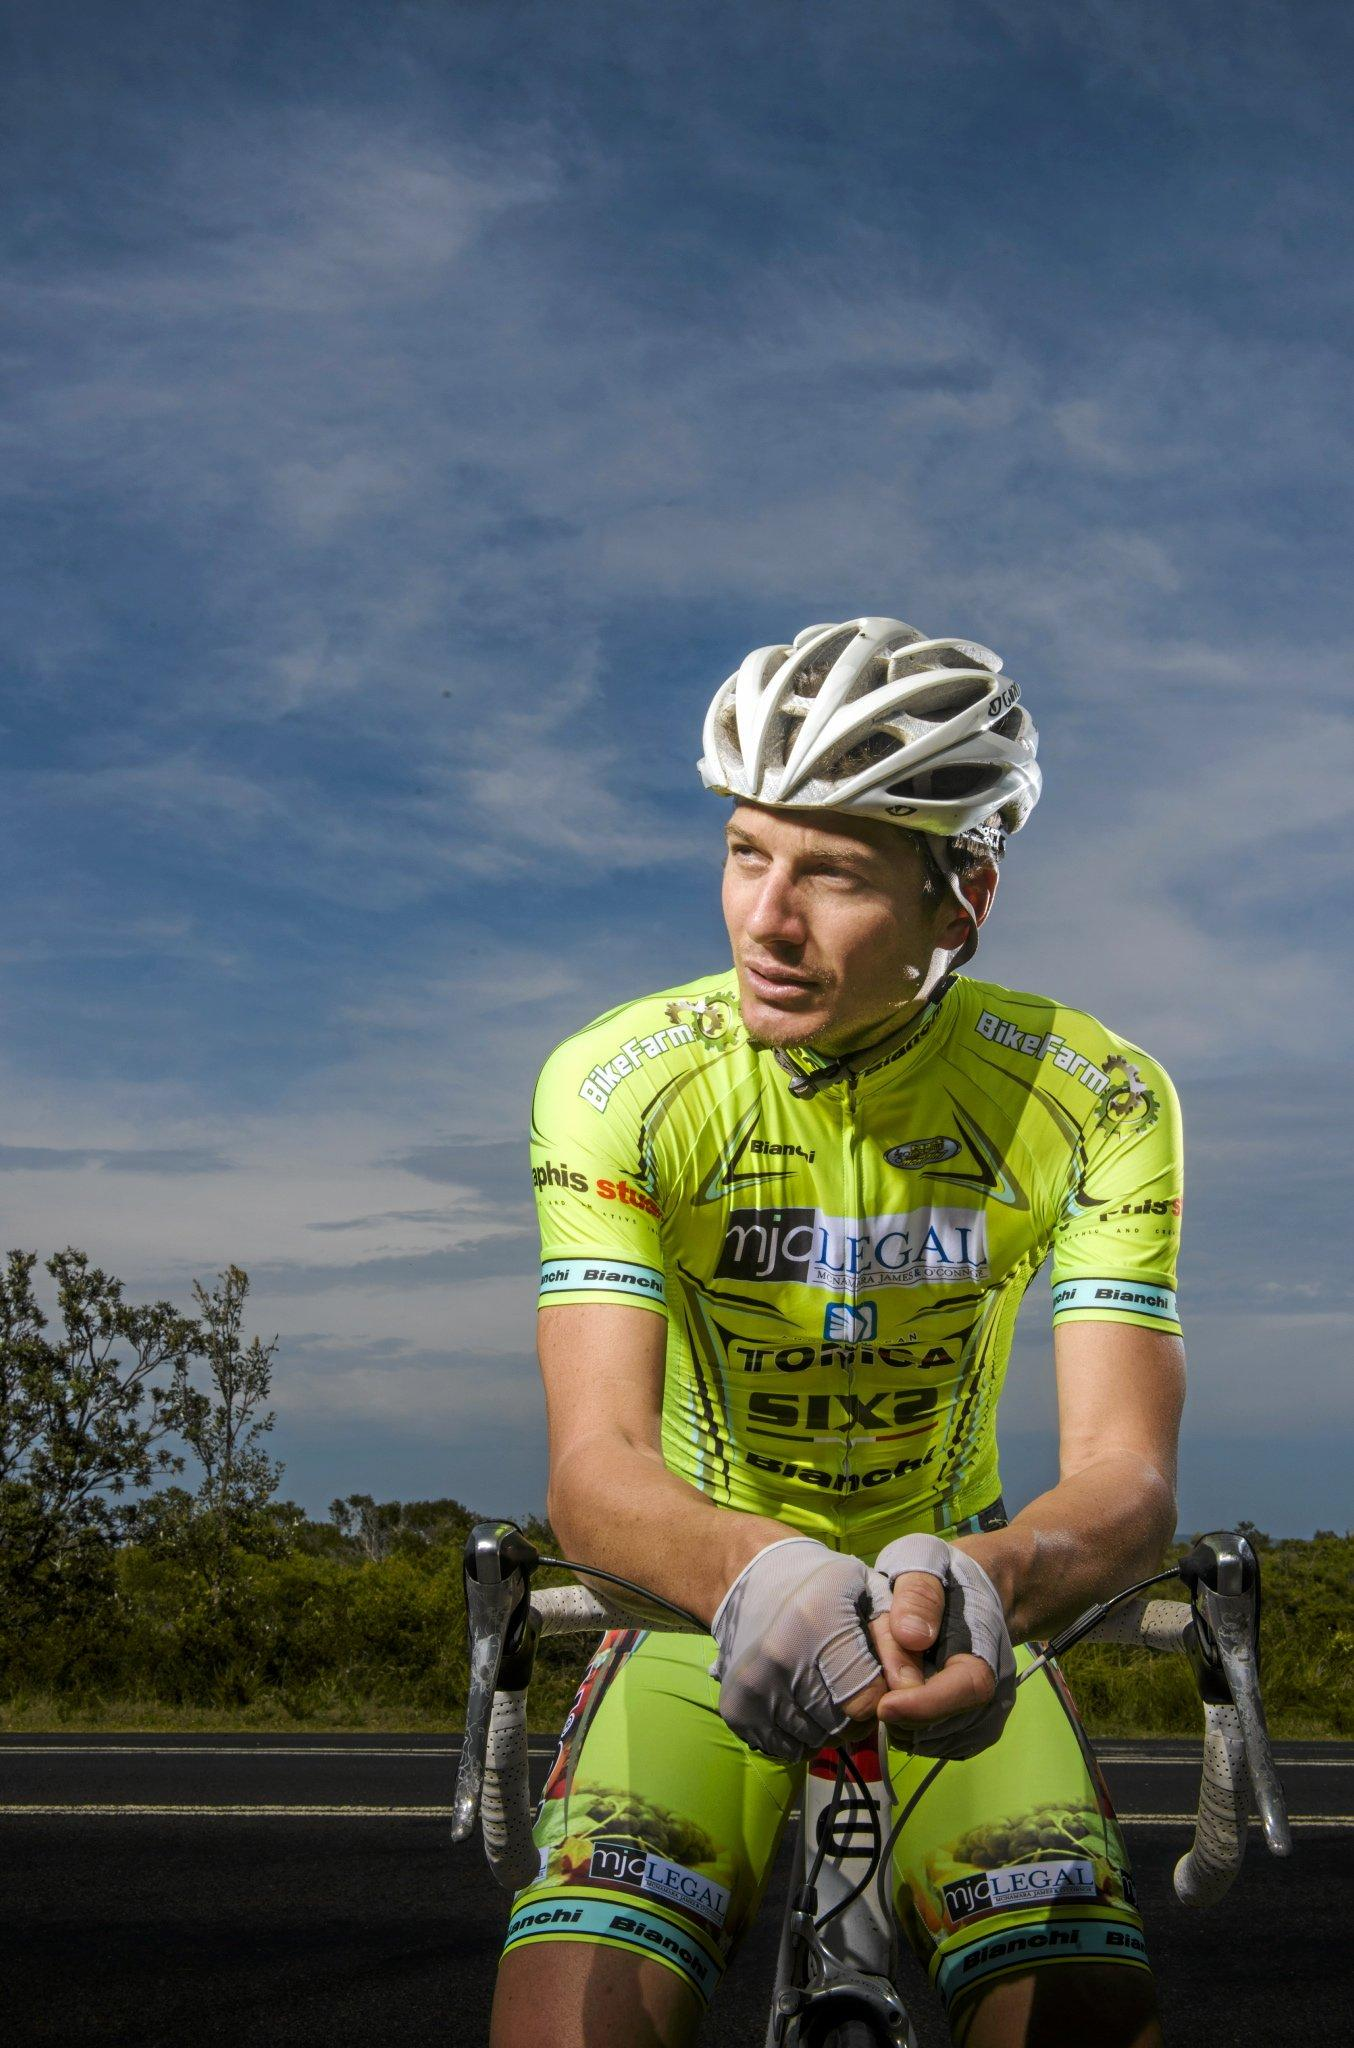 FOR A CAUSE: Yamba's Morgan Pilley, who bases himself in Italy riding enduarnce mountain-bike events - is preparing for a 24 hour ride around the Junction Hill criterium track to raise money for mental health support services in the Clarence Valley.